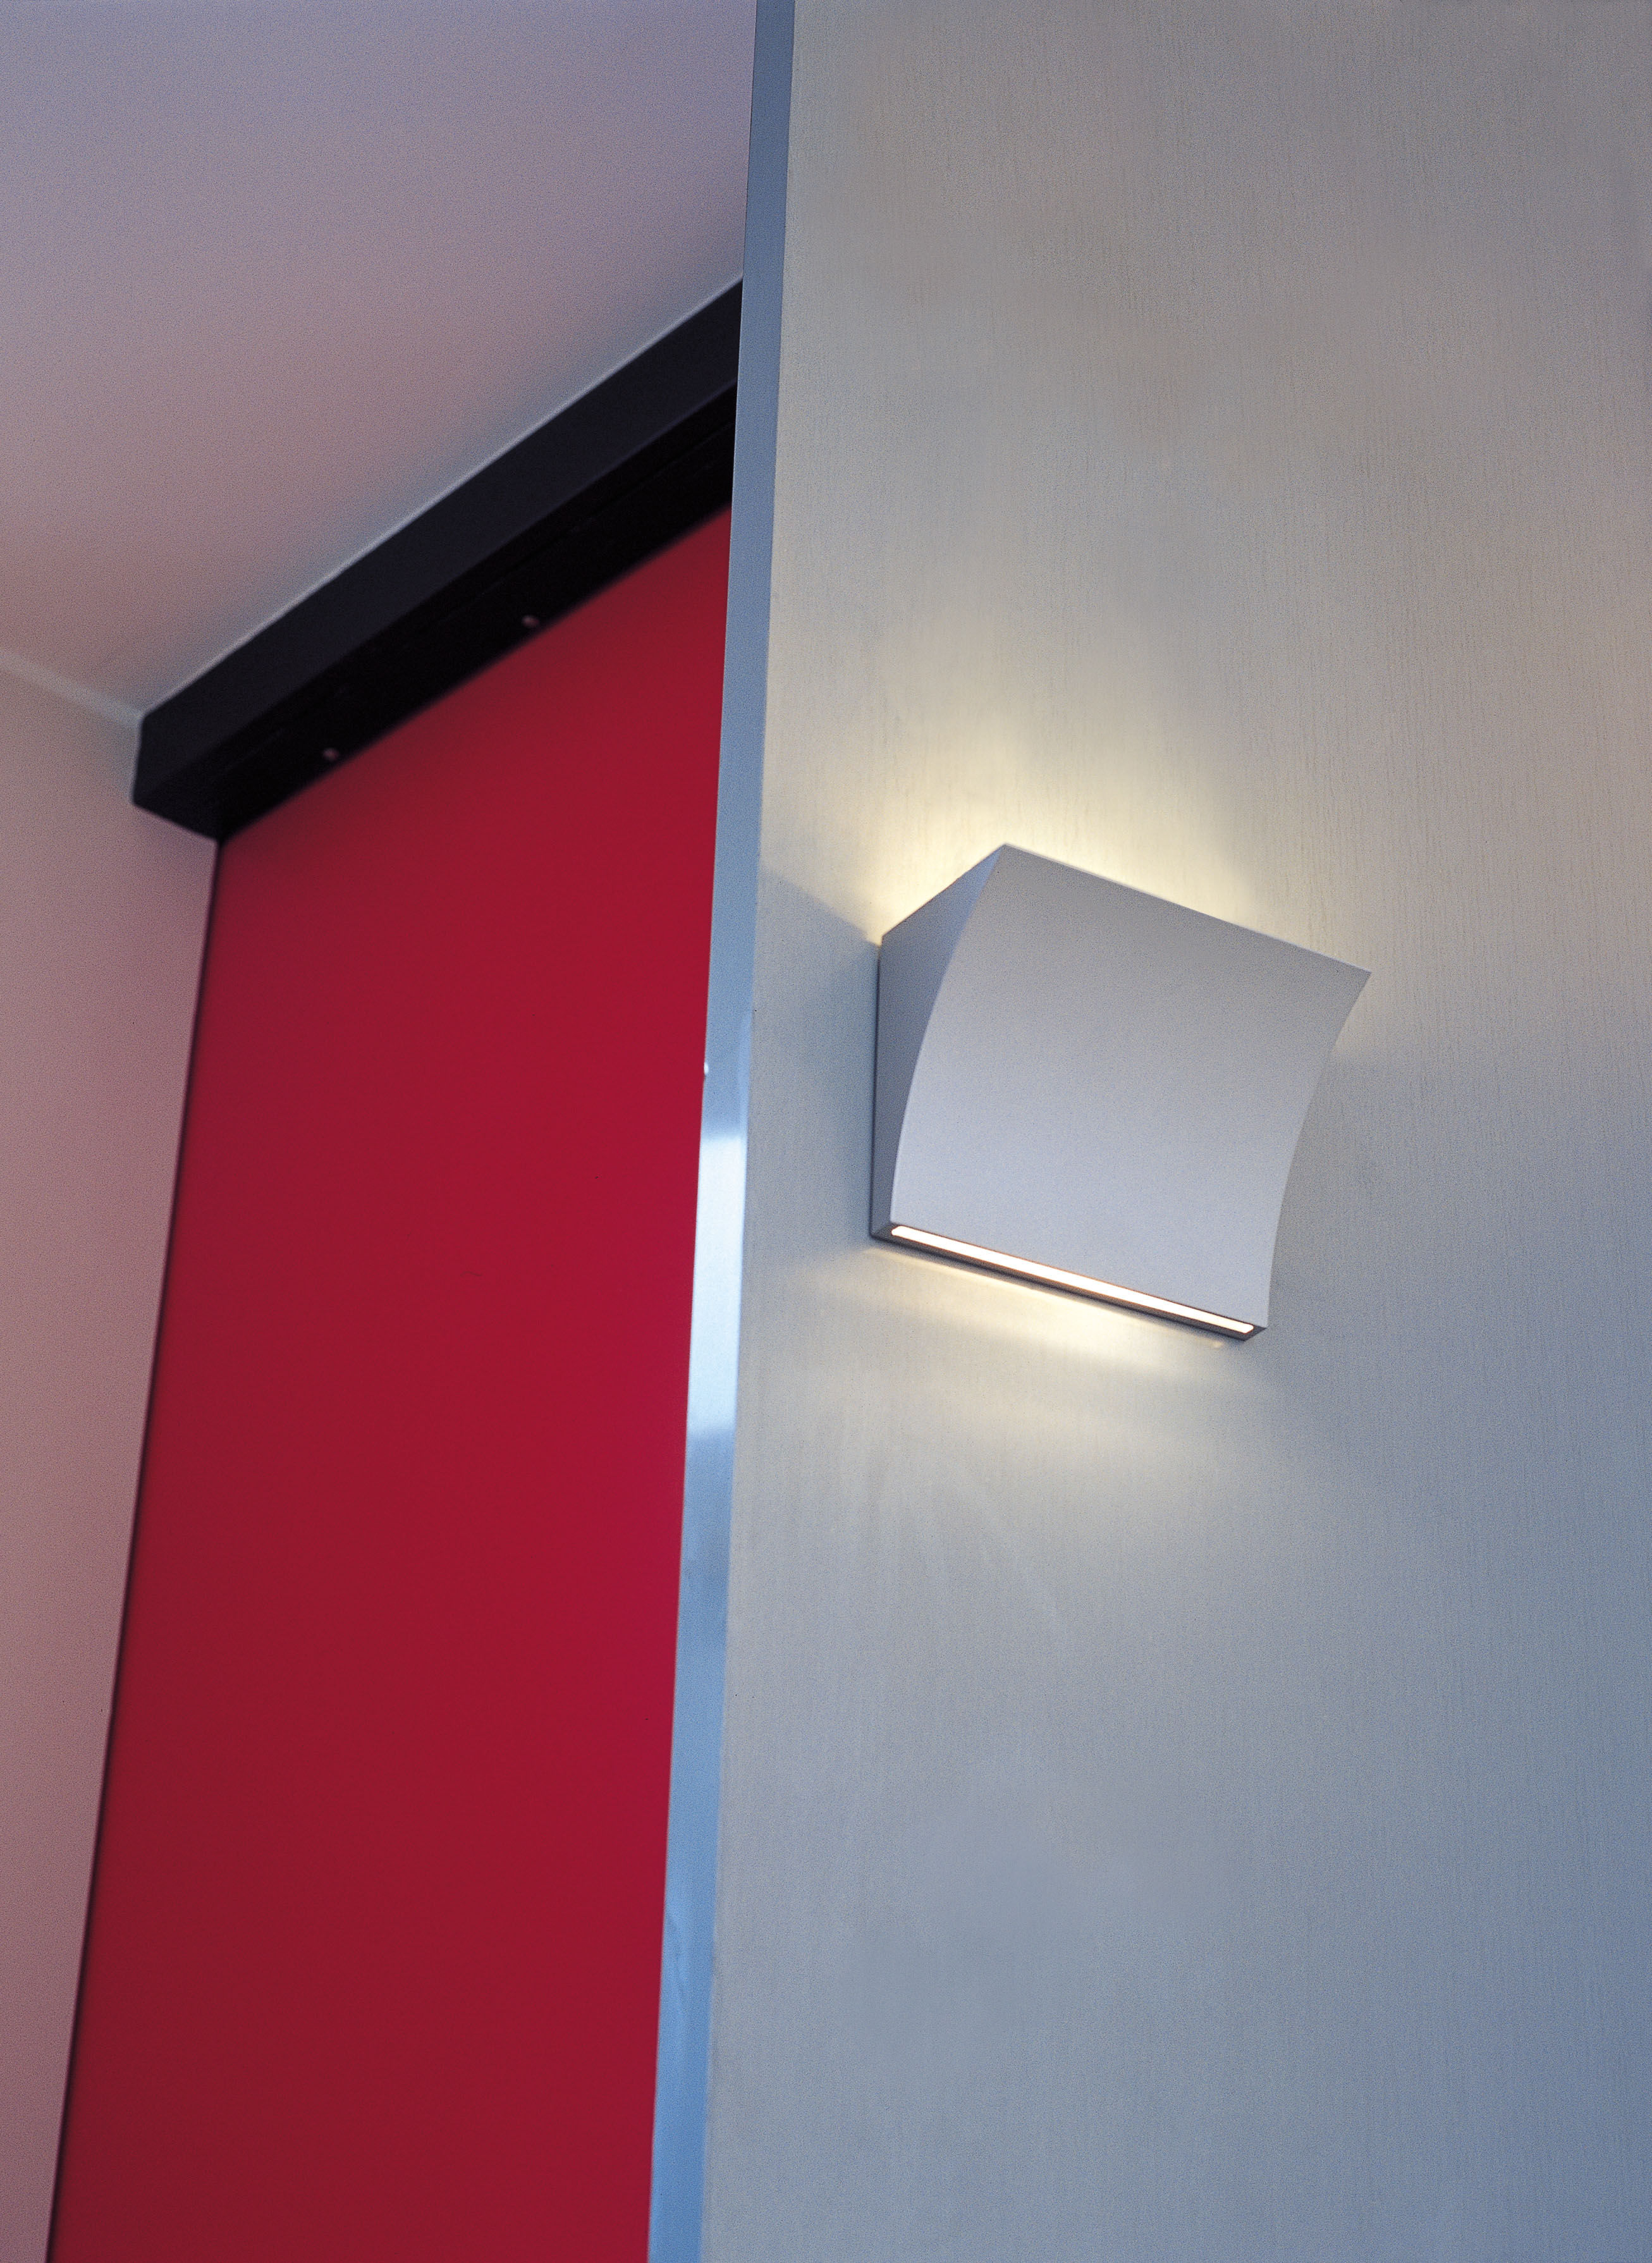 Pochette up down wall light chrome by flos for Applique exterieur up down